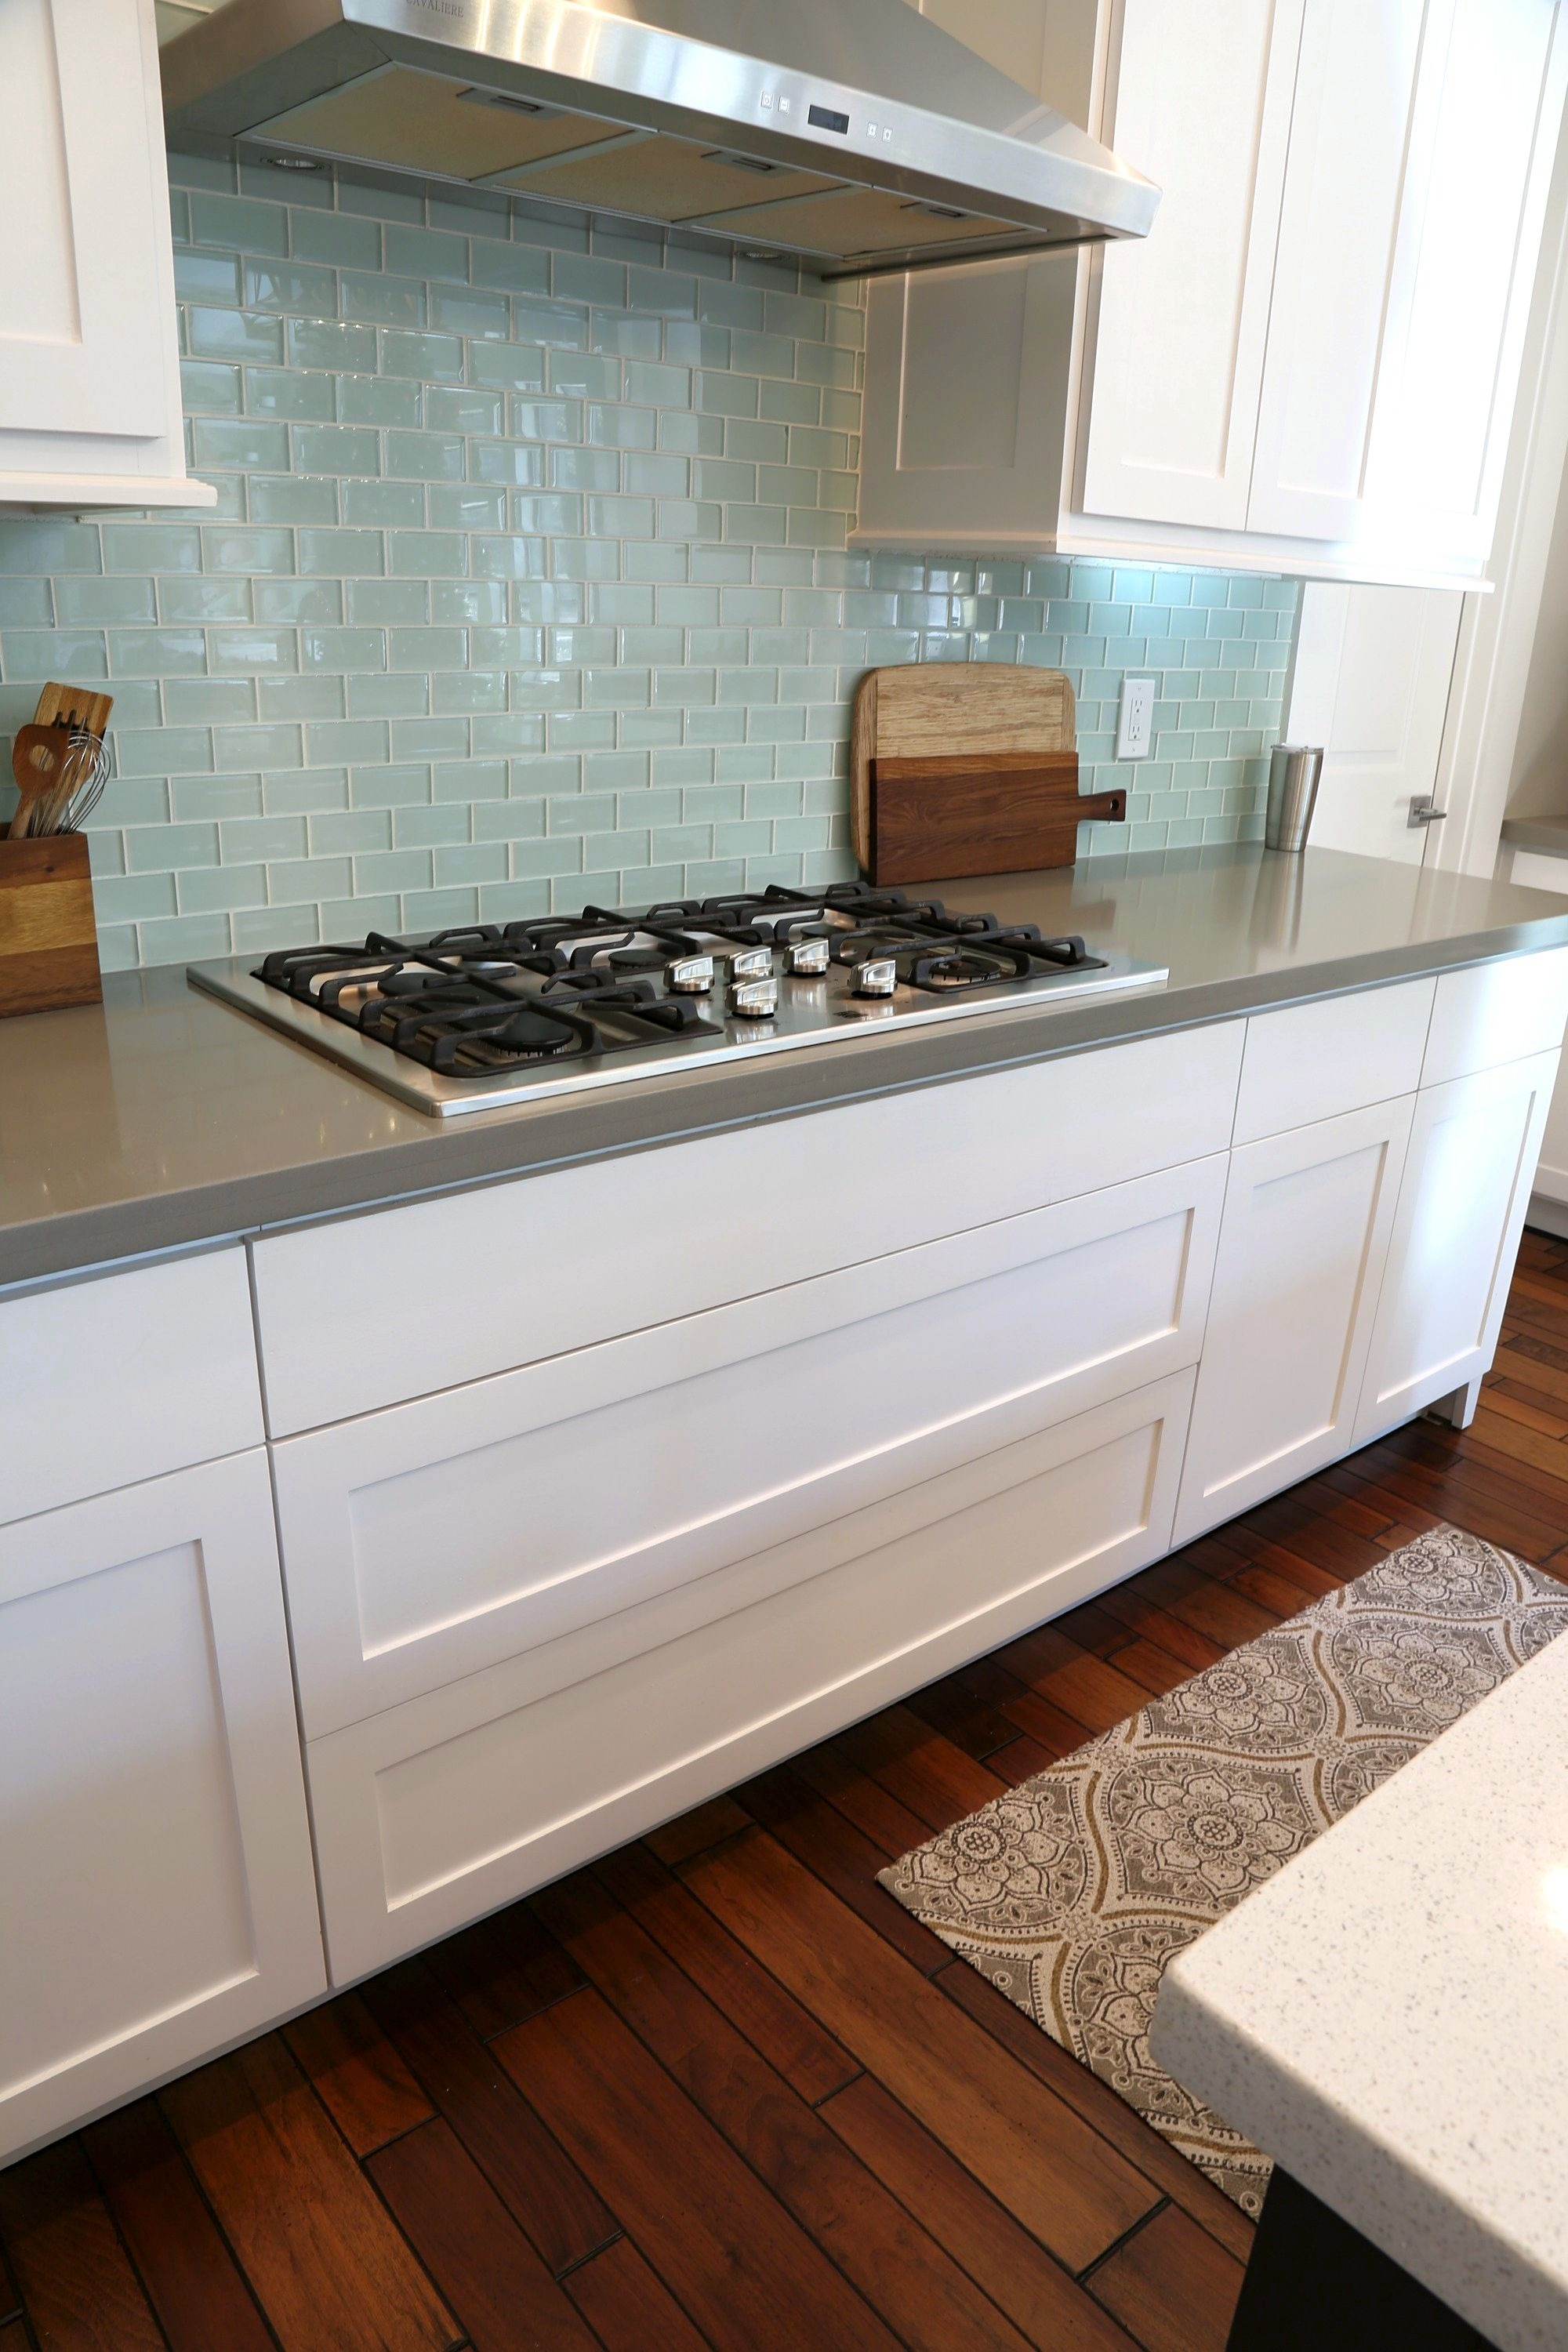 Wide kitchen drawers under stove top.